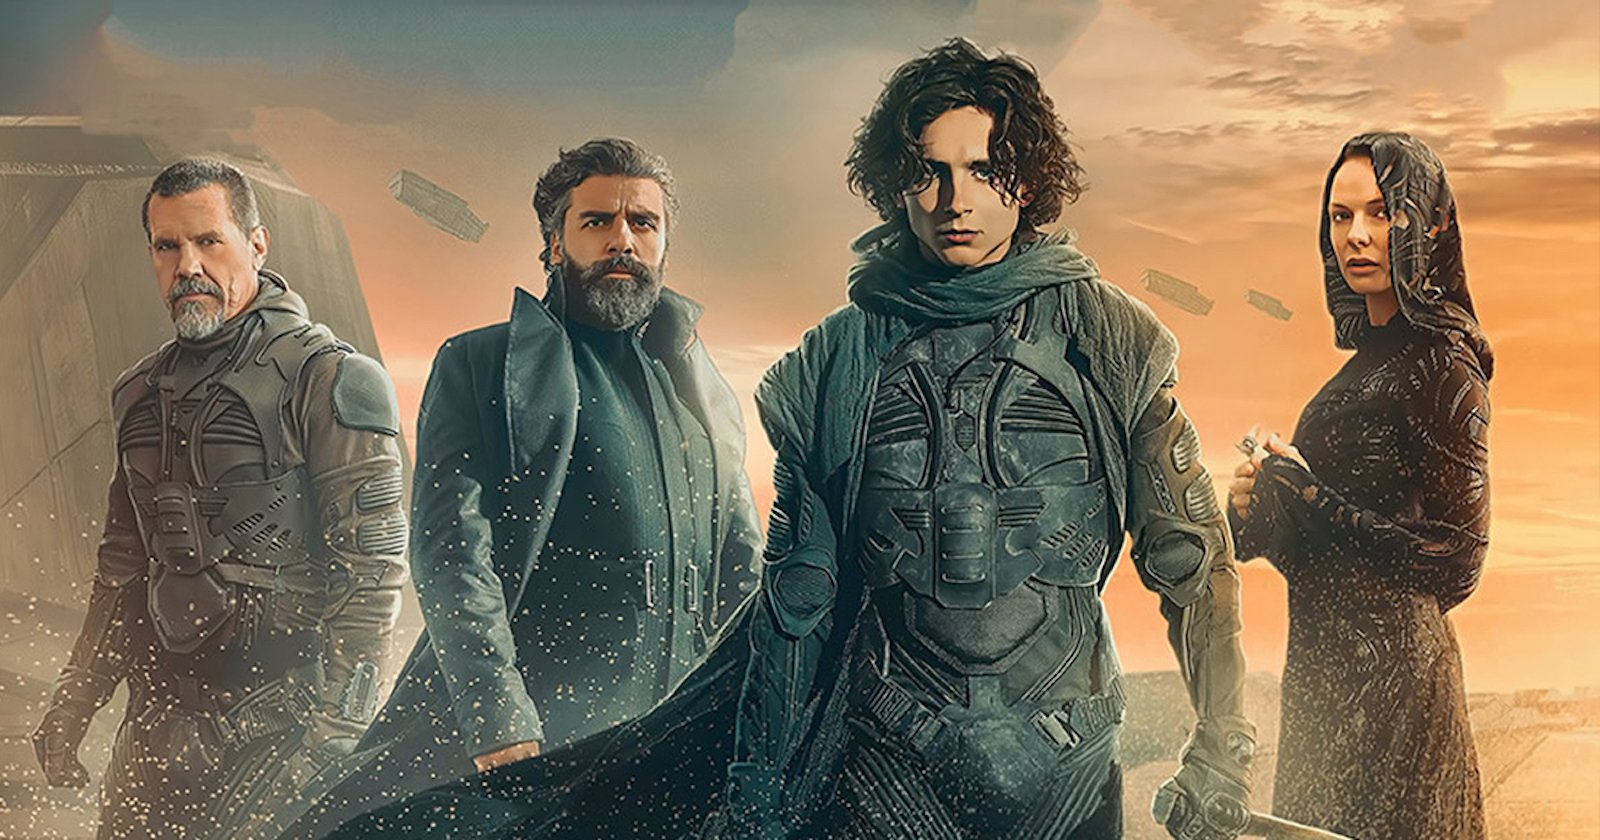 Dune will premiere at the Venice Film Festival in early fall 2021